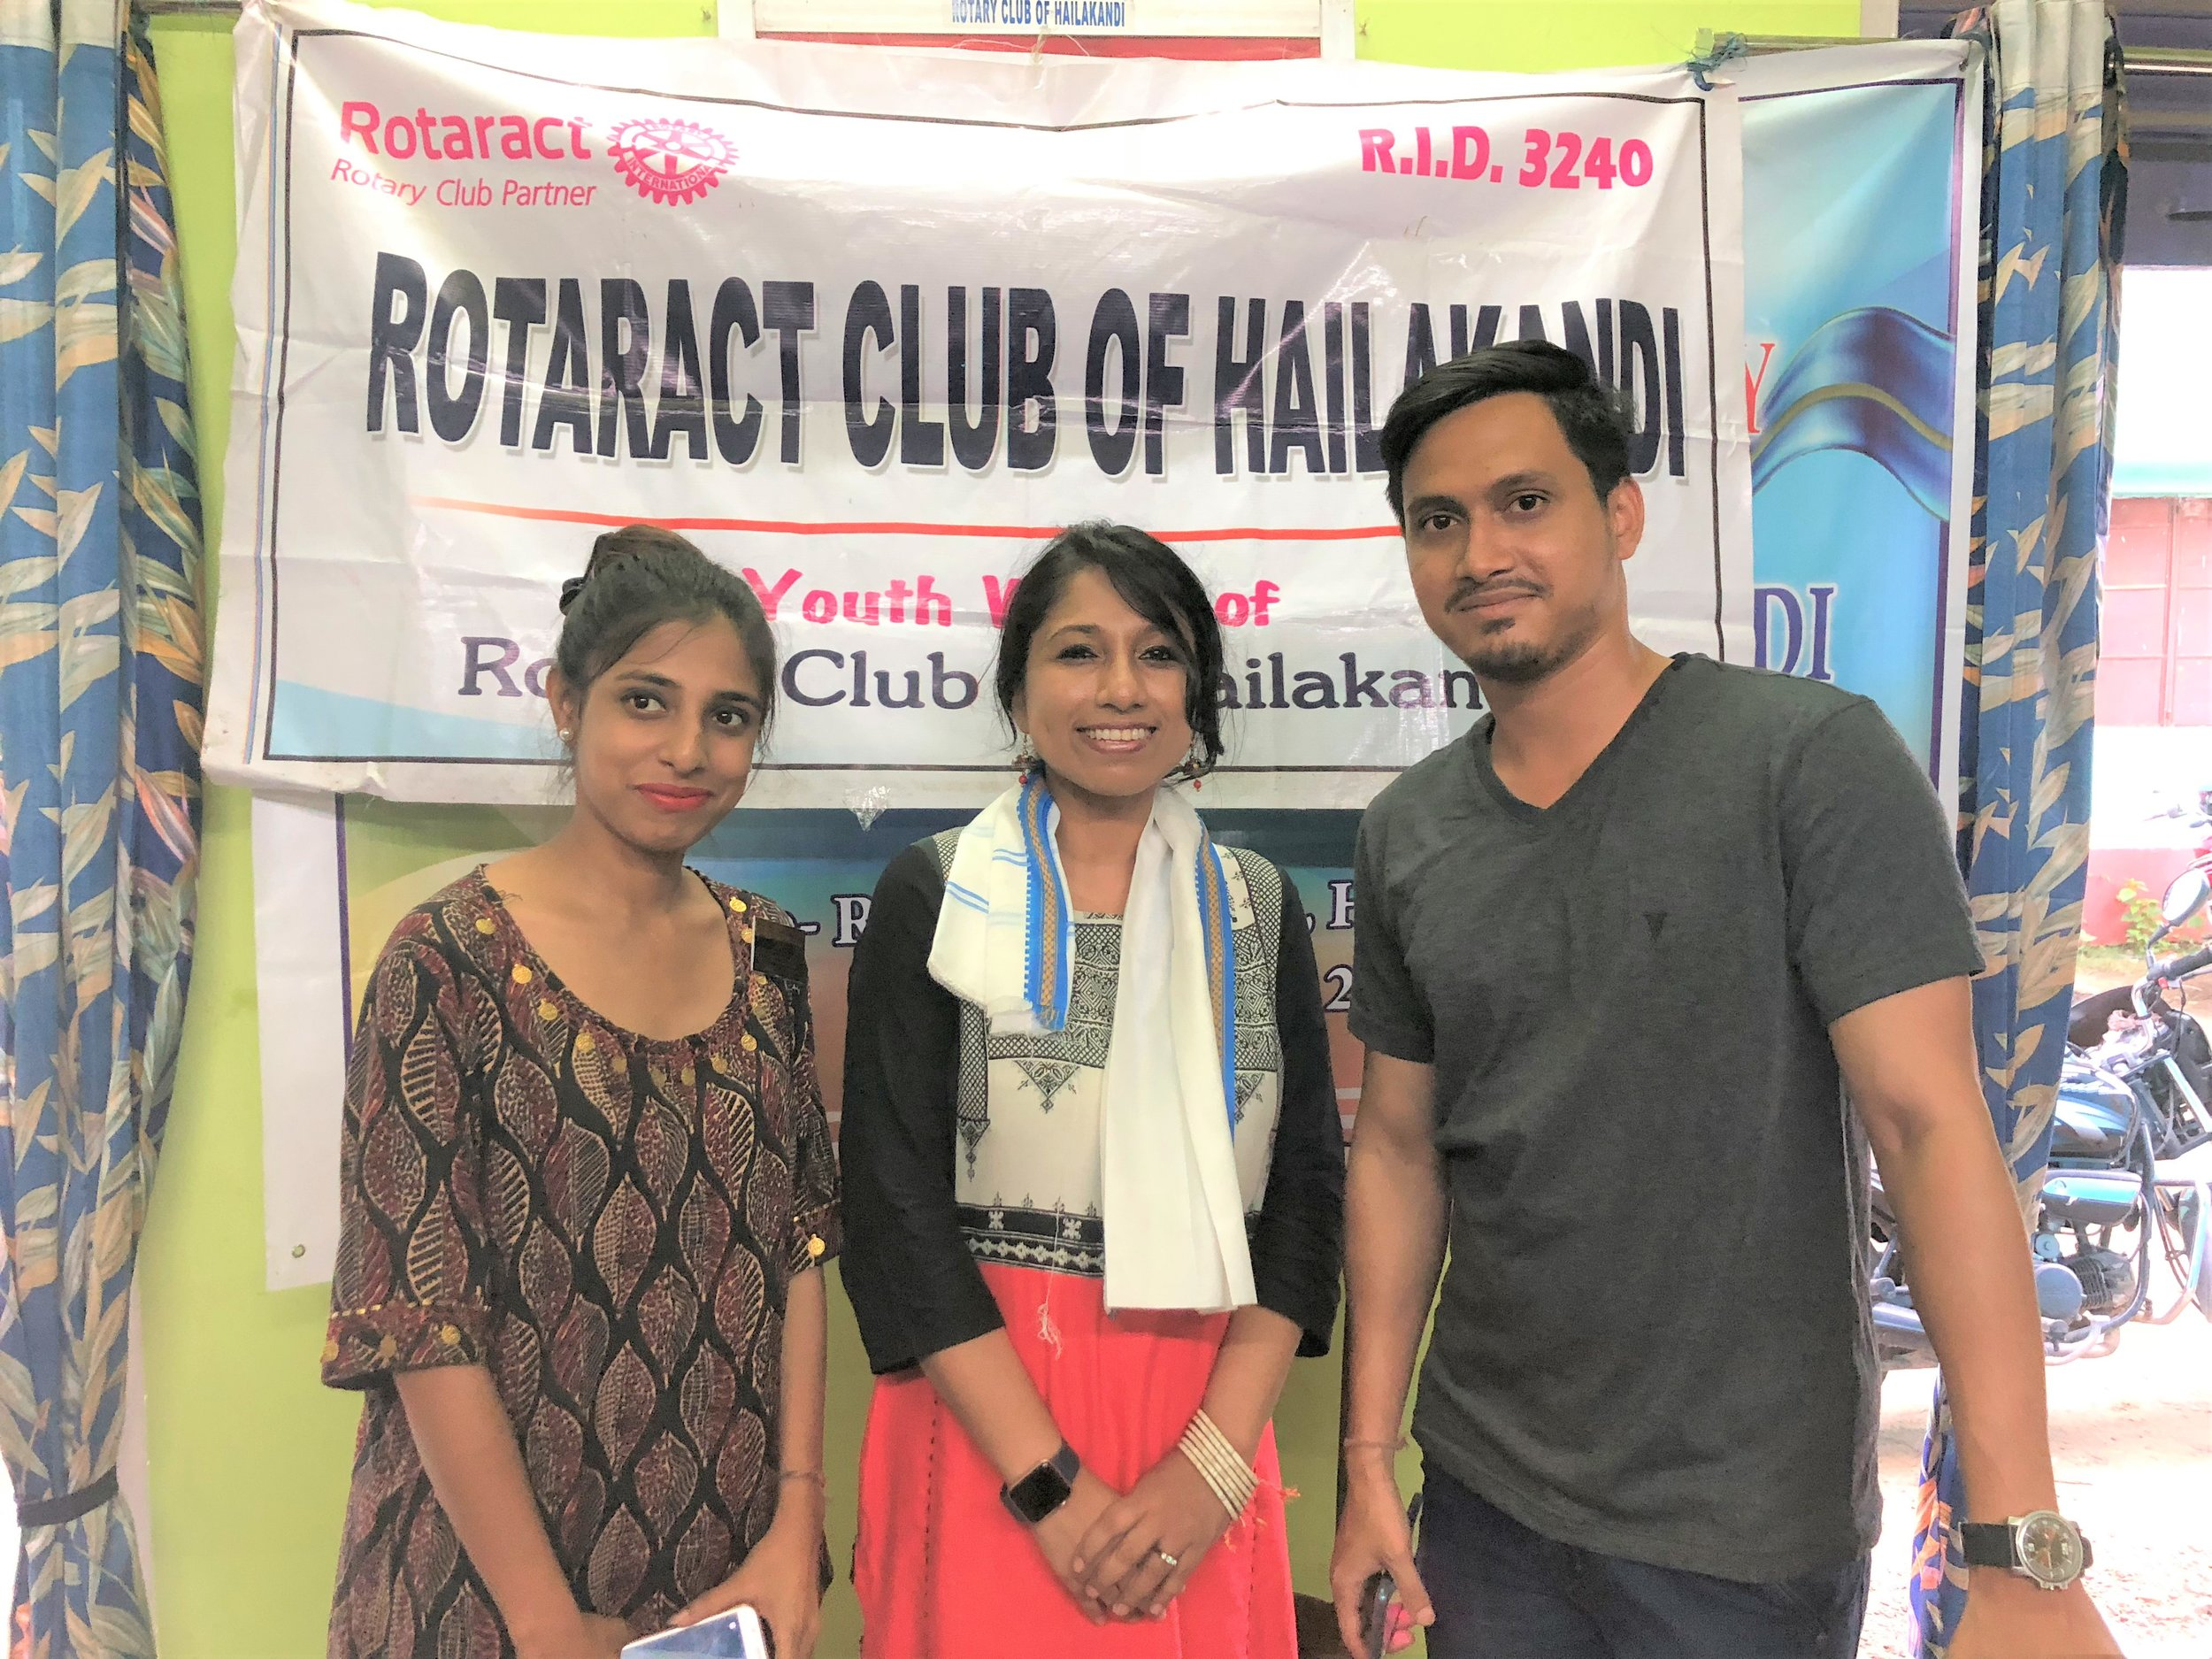 Amazed by the young generation coming up.... thanks to the Rotaract club of Hailakandi!